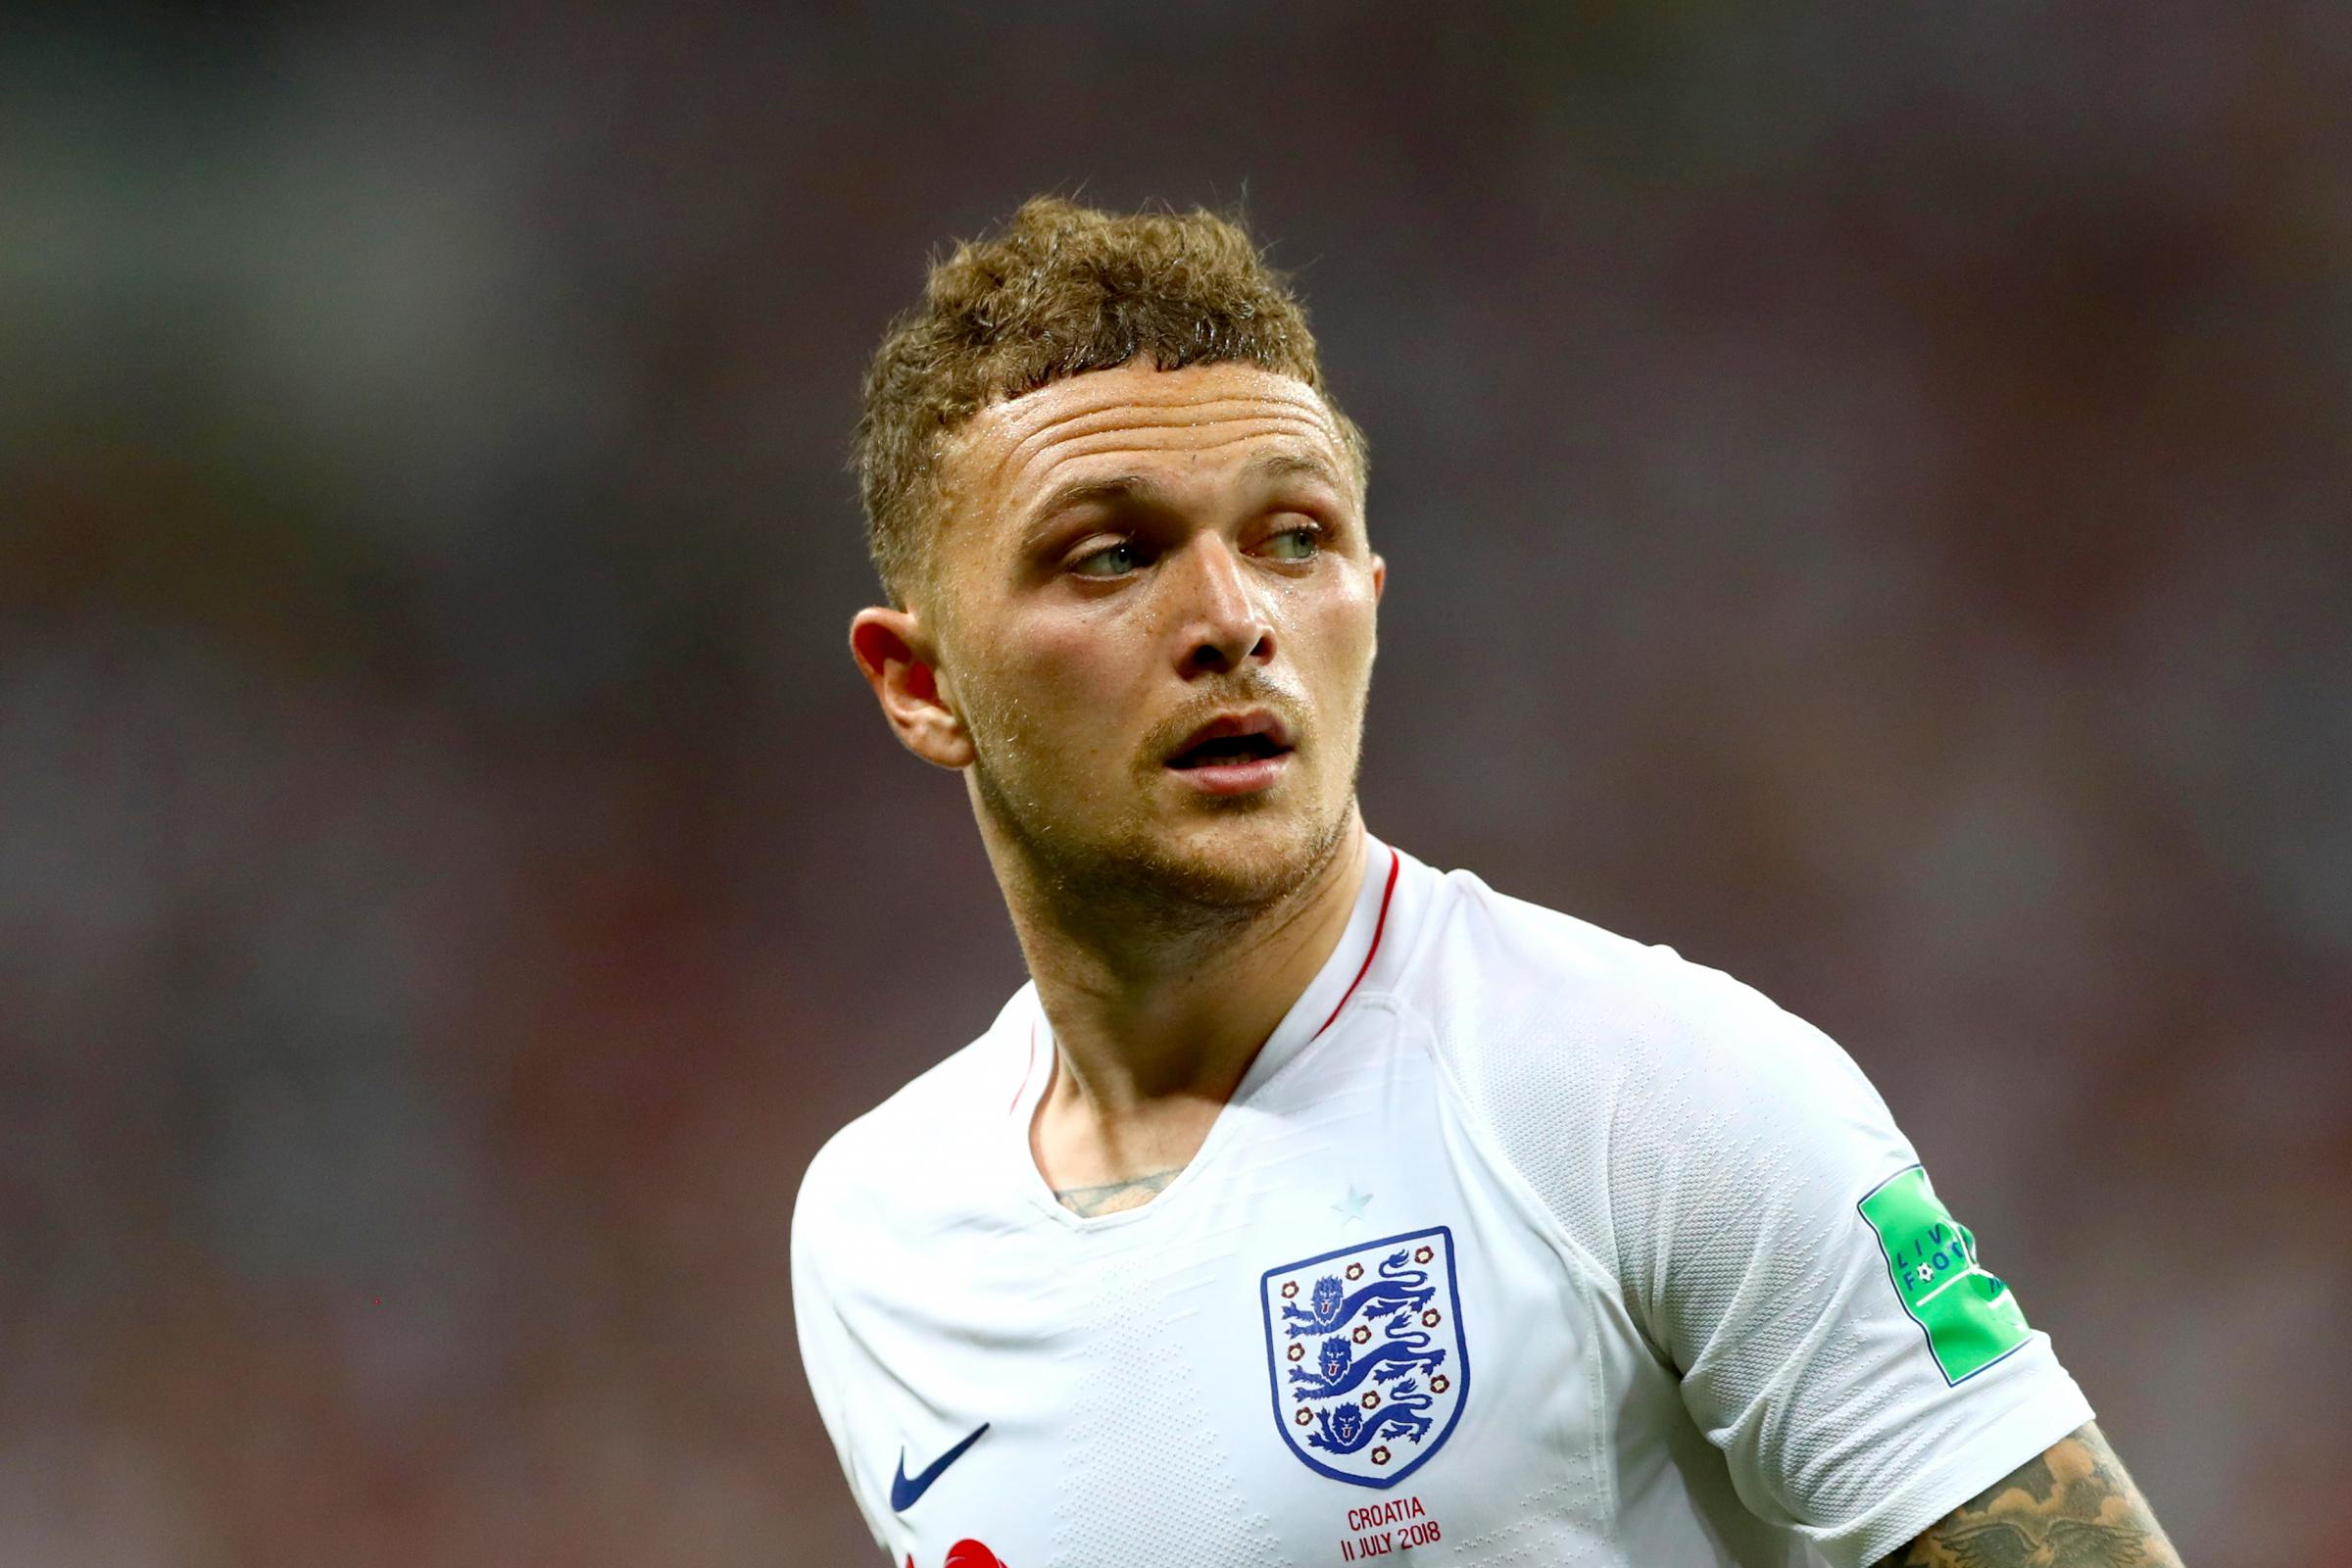 Kieran Trippier admits he has not been at his best this season